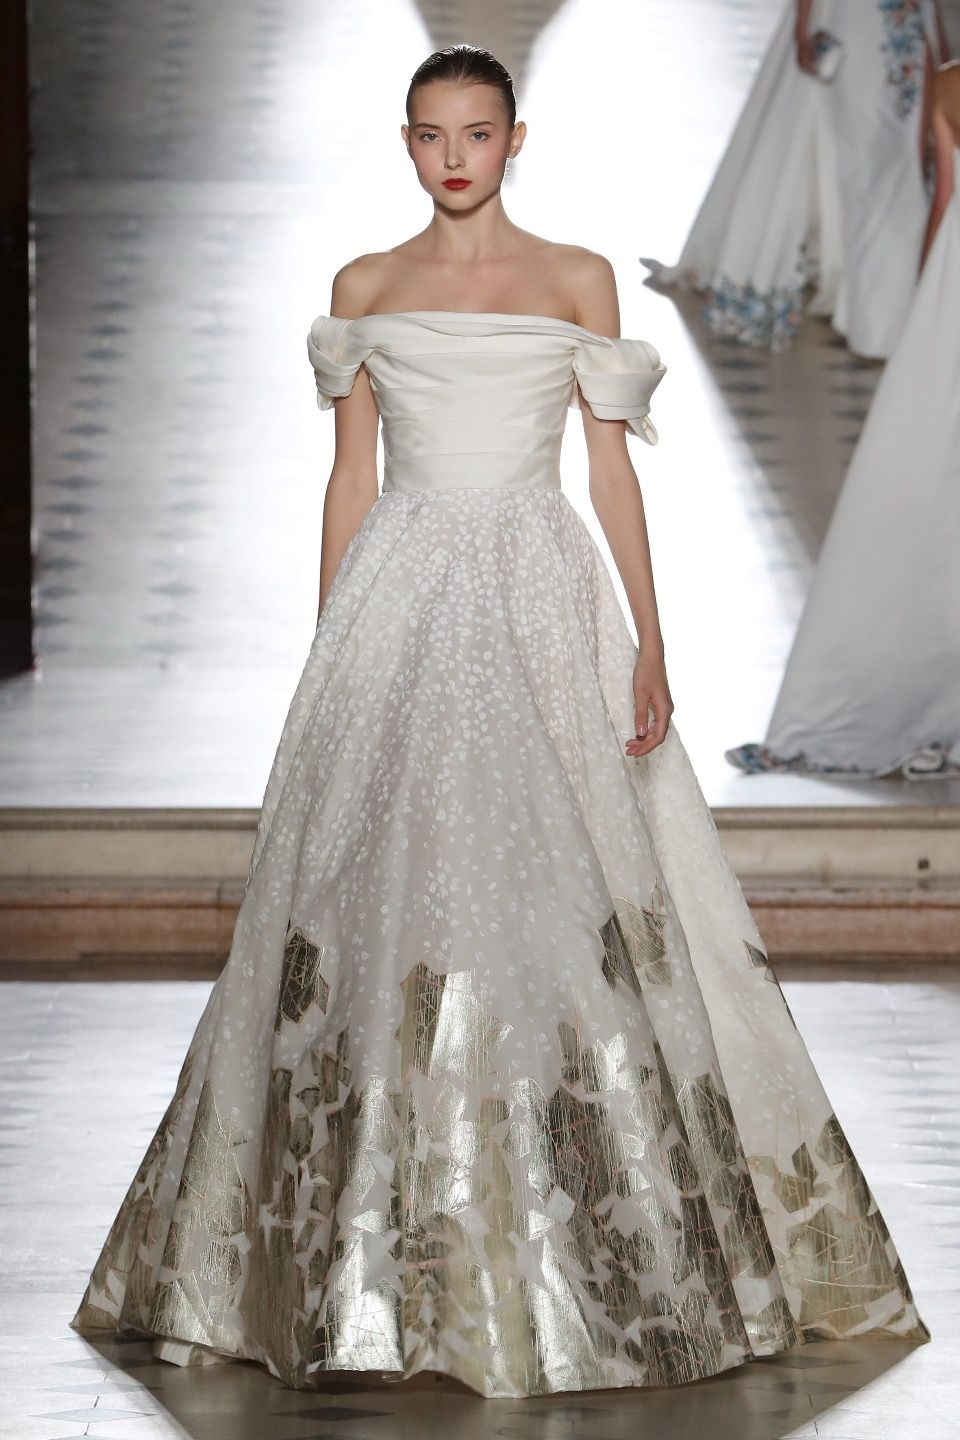 Metallic wedding dress  Tony Ward Fall  Couture Fabulous gown fit for a queen I love